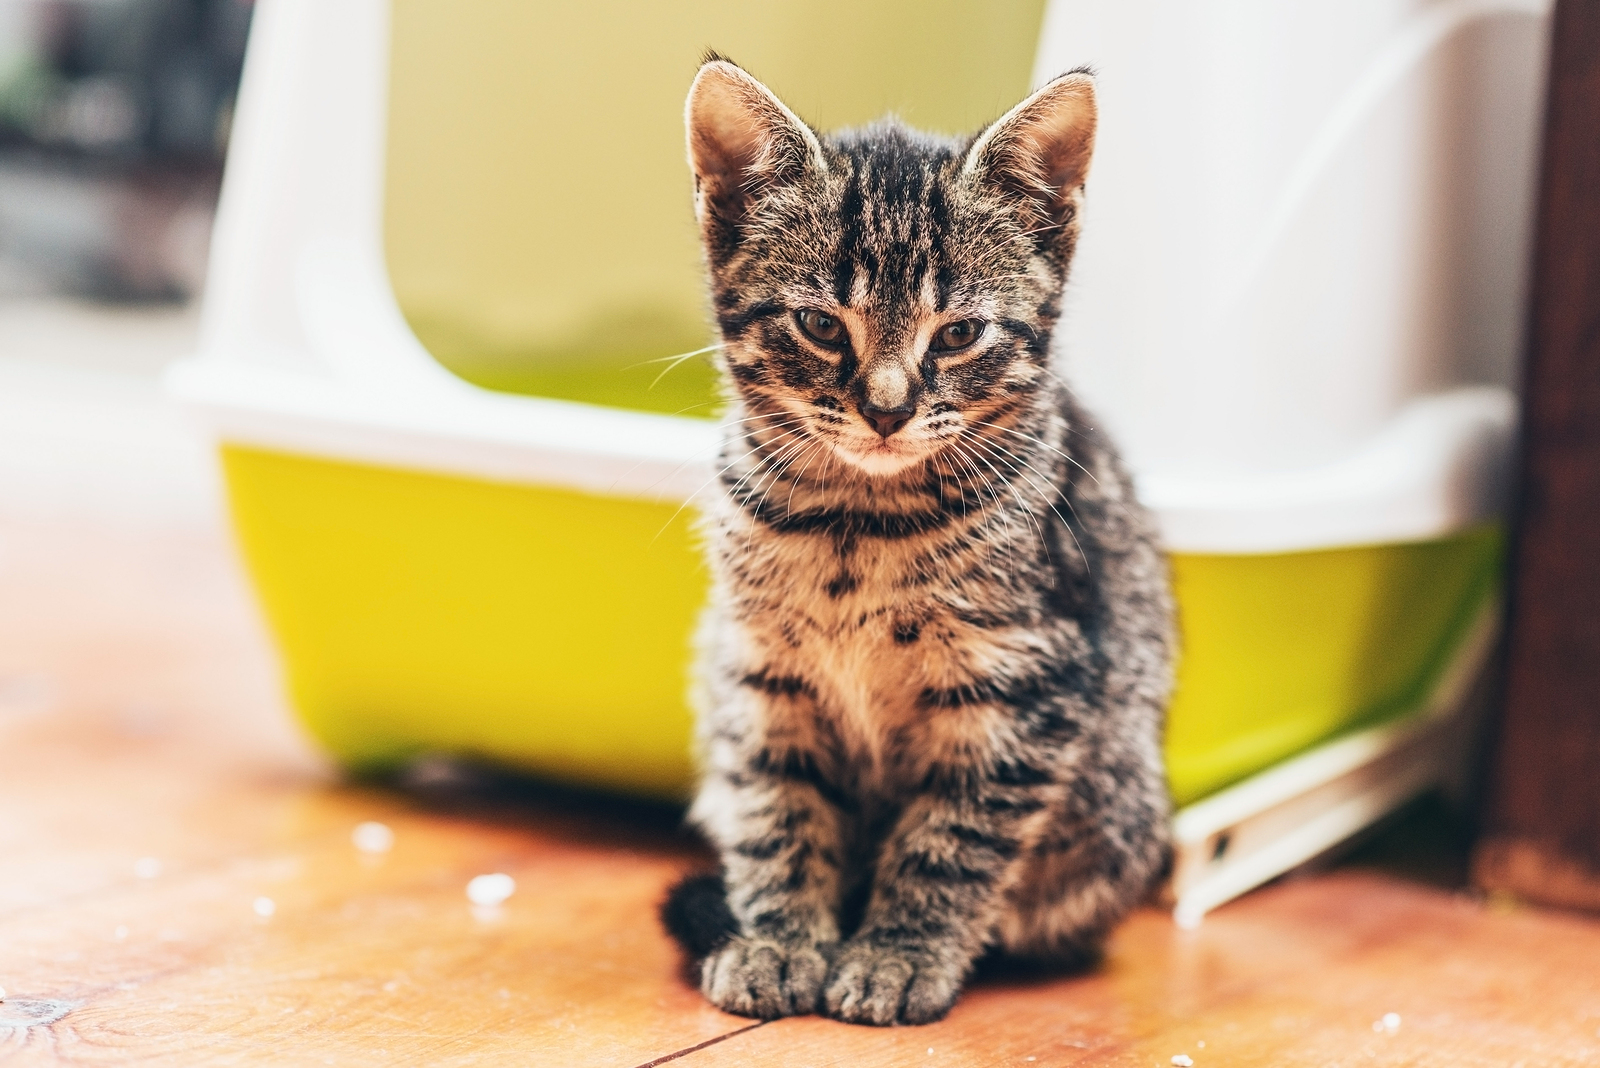 can cats spread urinary tract infections